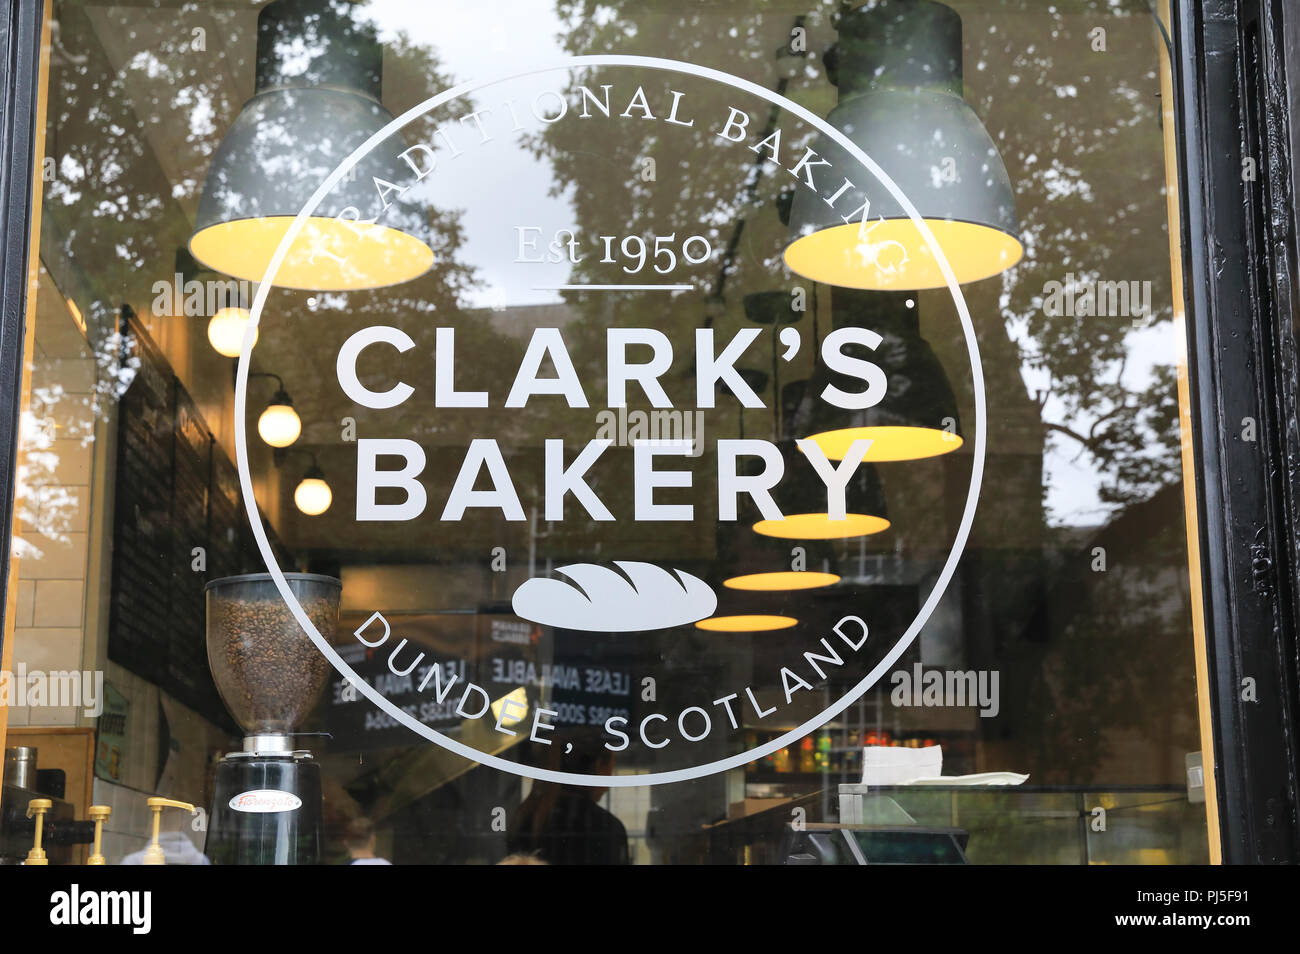 Clark's Bakery, a traditional bakery on Annfield Street, in central Dundee, Scotland, UK - Stock Image